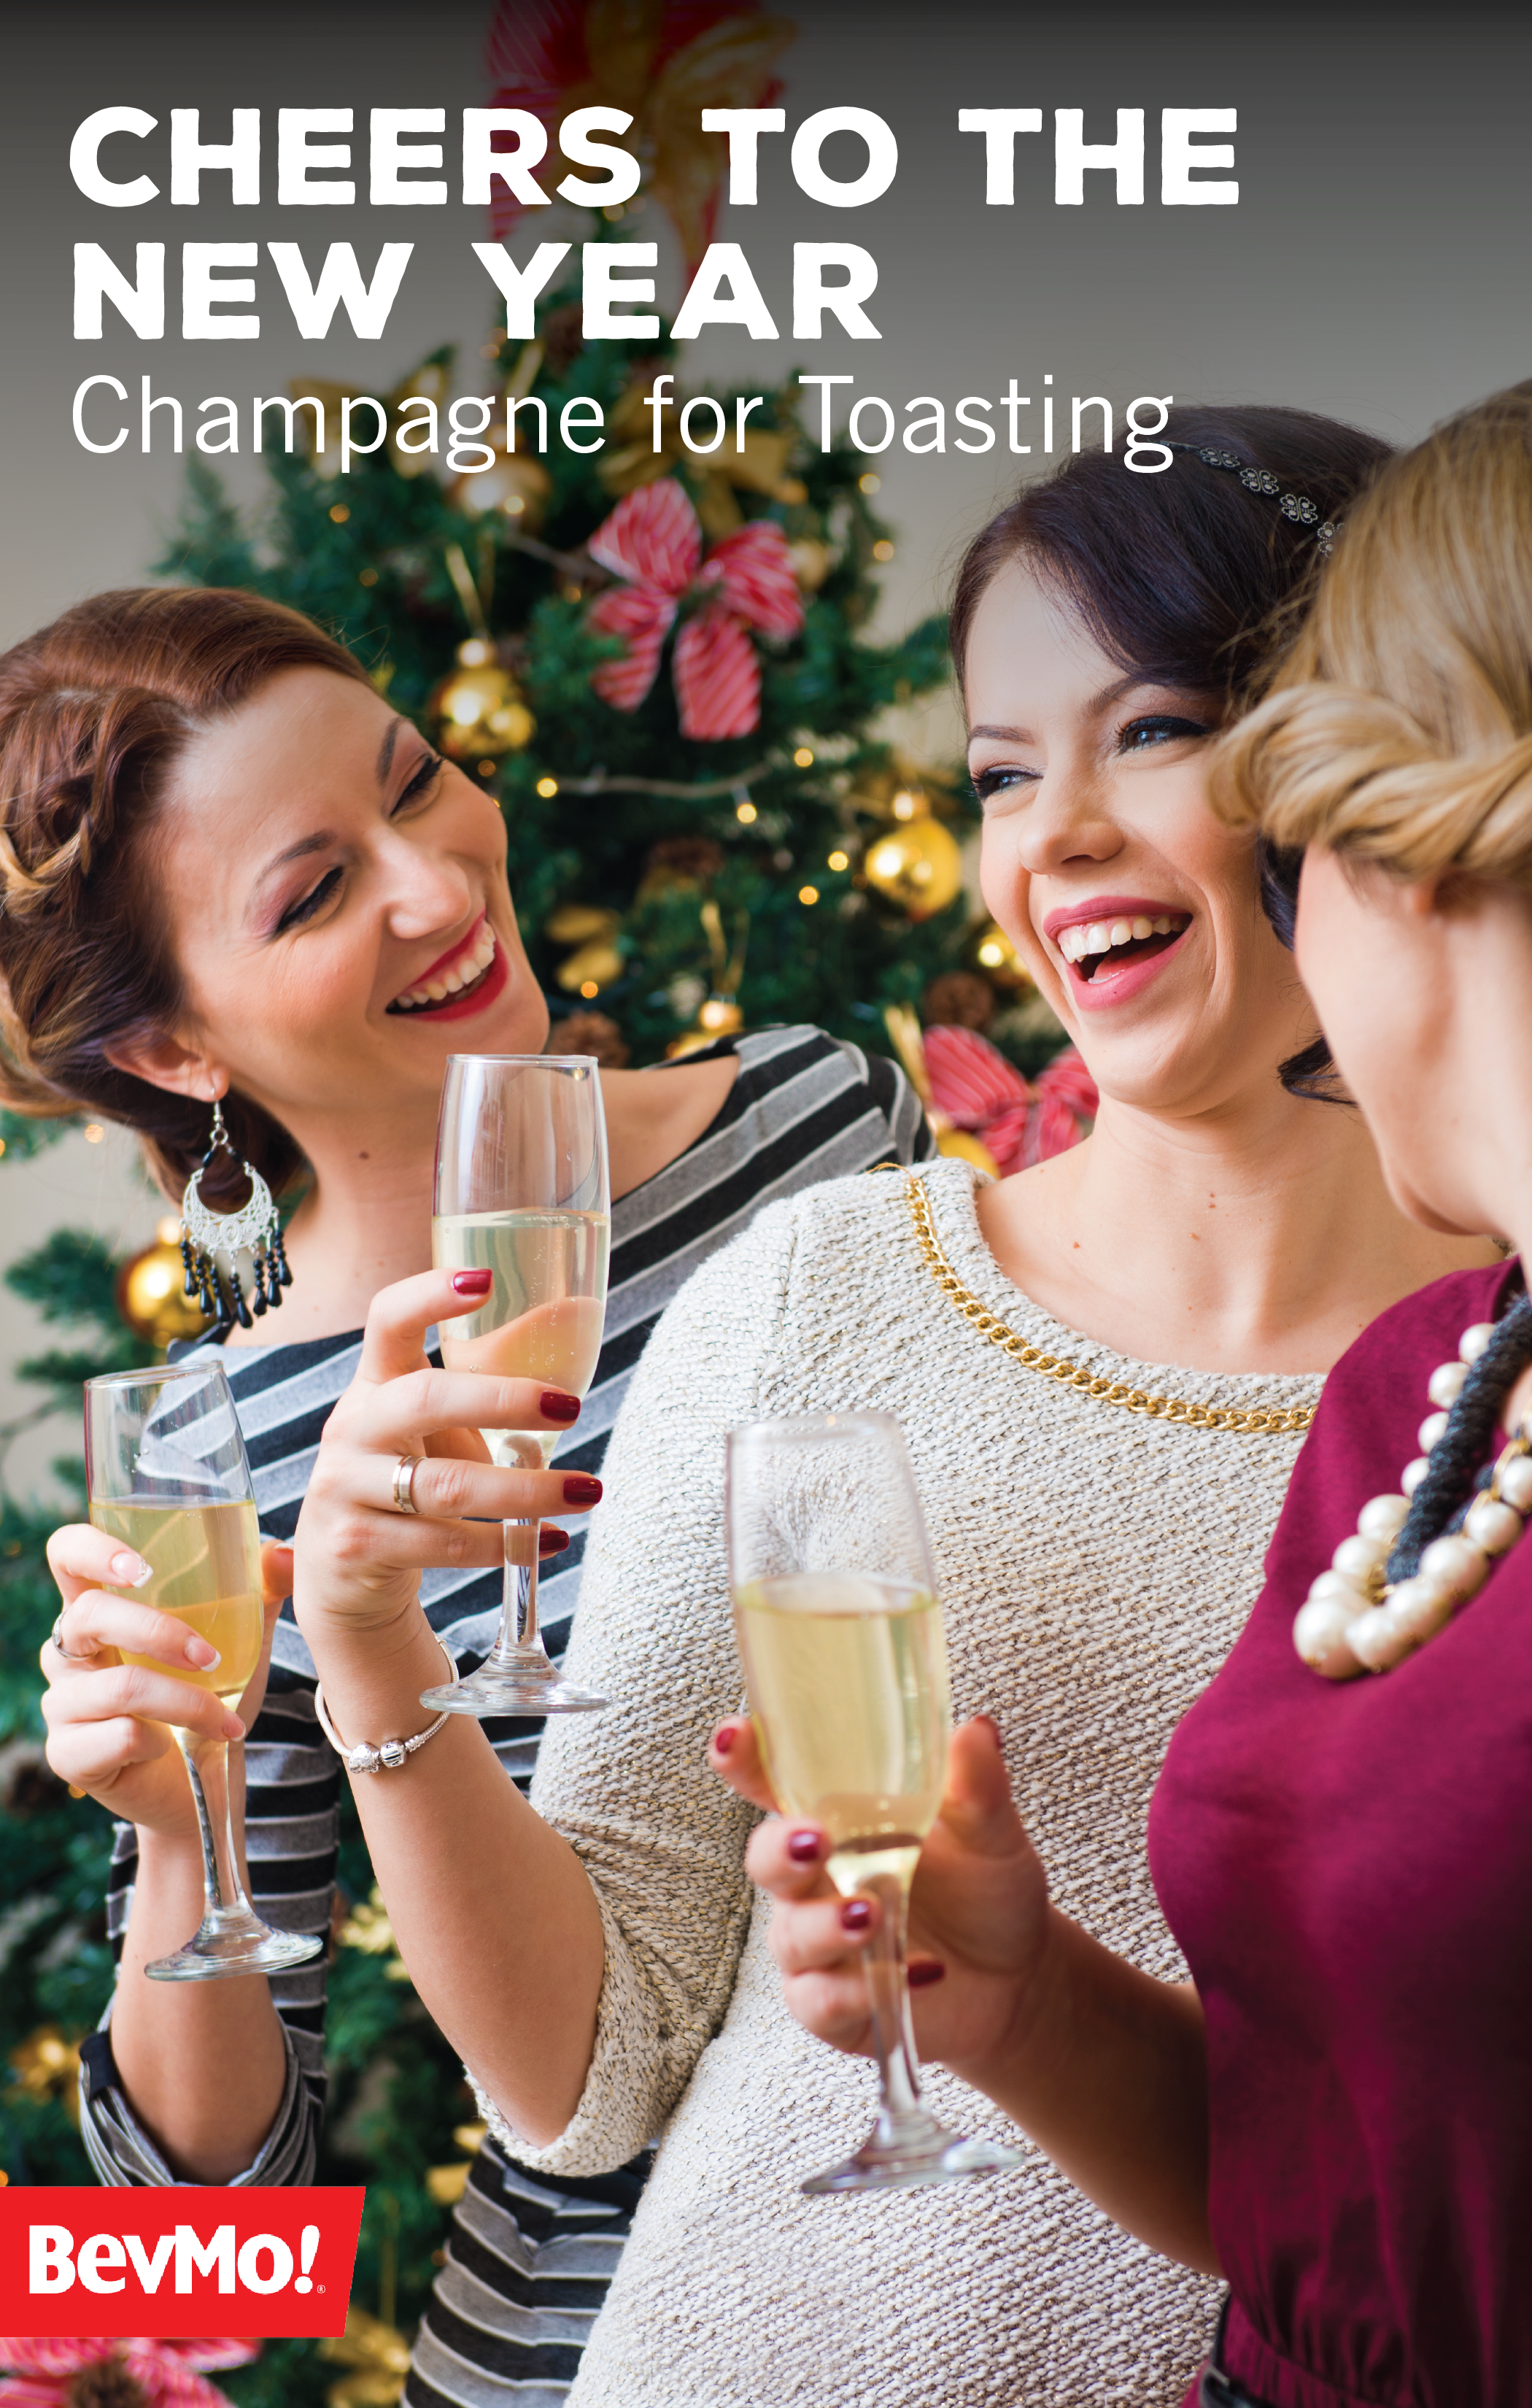 Raise a glass to delicious sparkling wine with help from this 101 guide from BevMo! Finding the perfect bubbly for toasting at your New Year's Eve party from the wide variety of cava, prosecco, sparkling wine, and champagne.